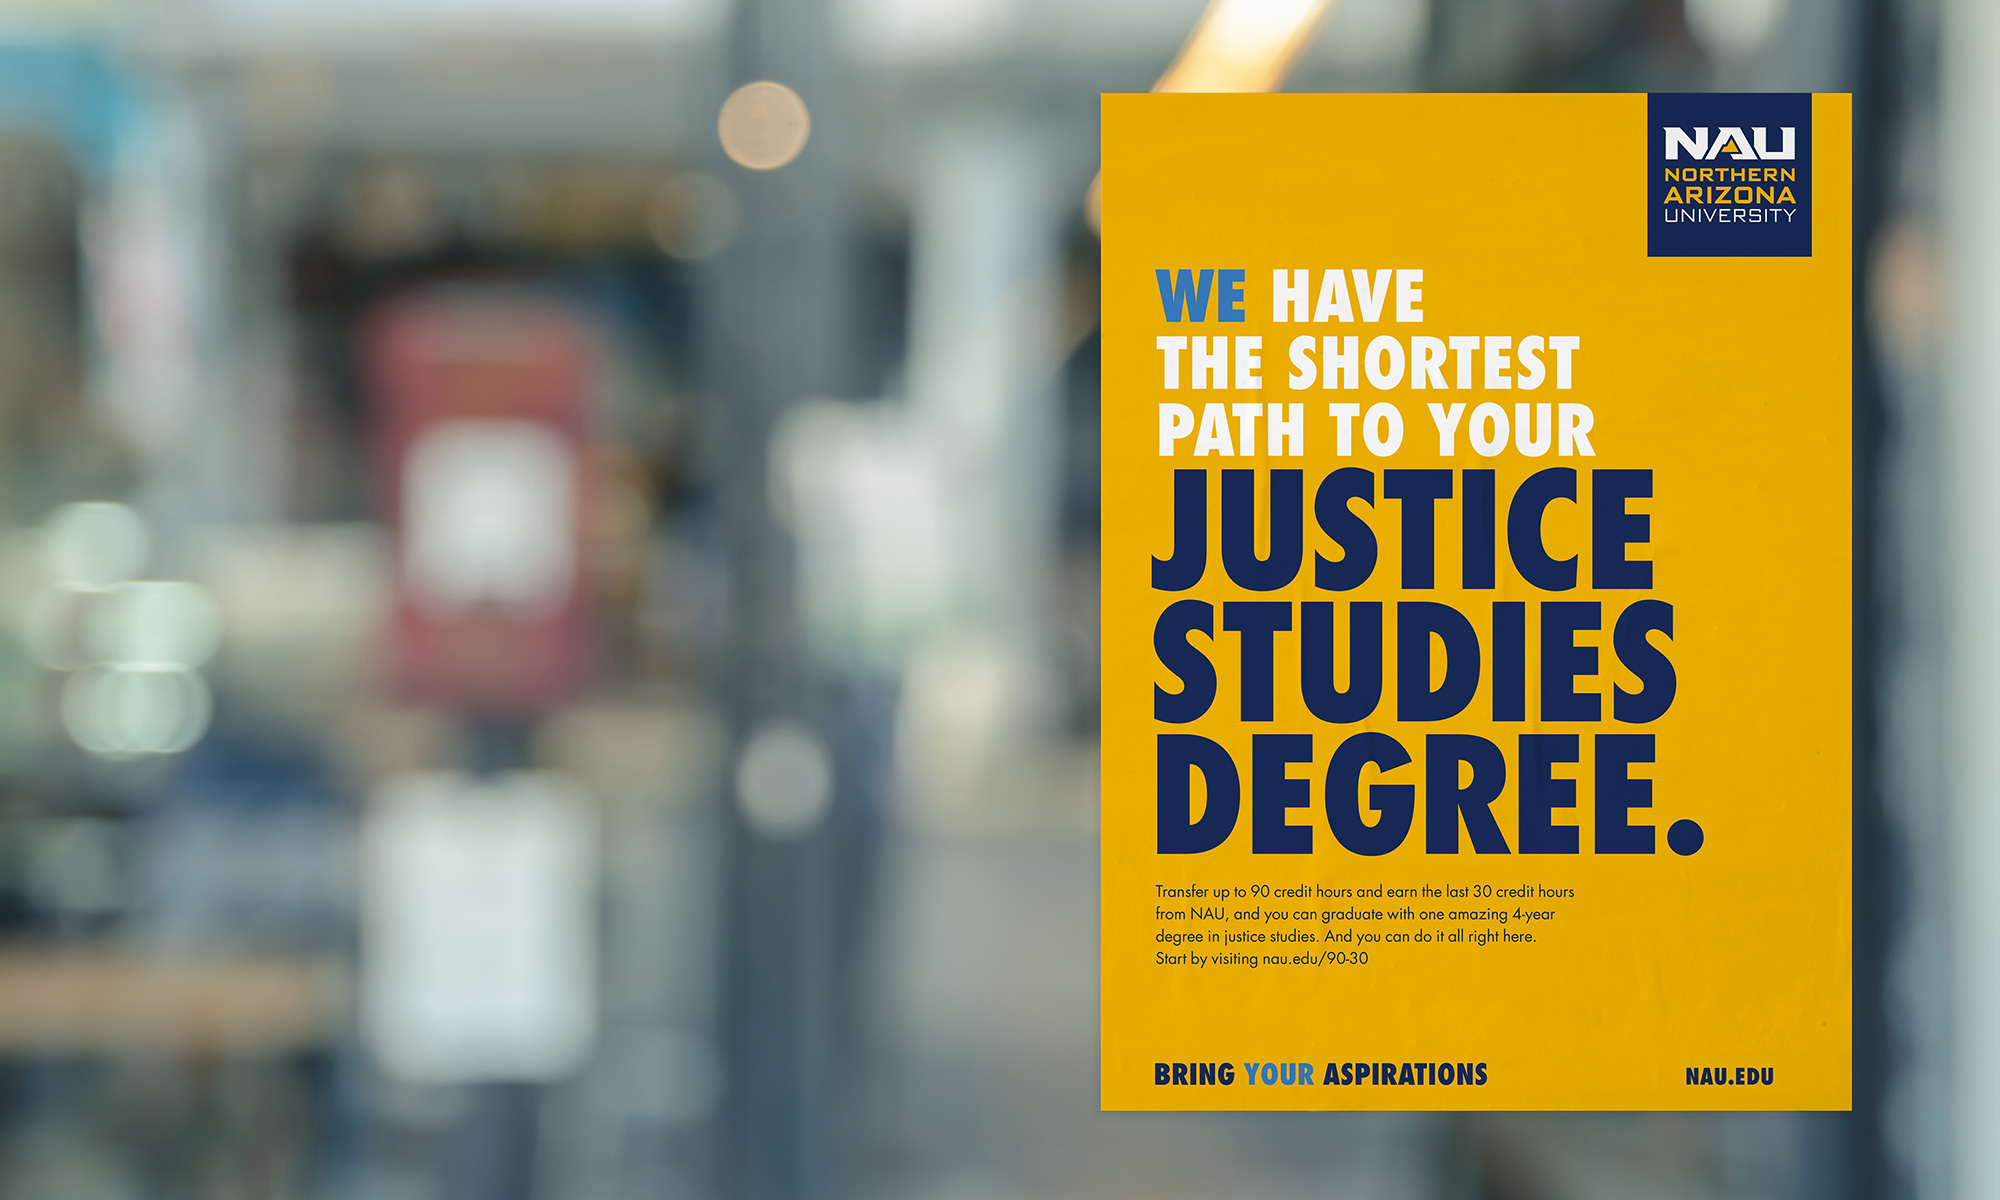 We have the shortest path to your justice studies degree.